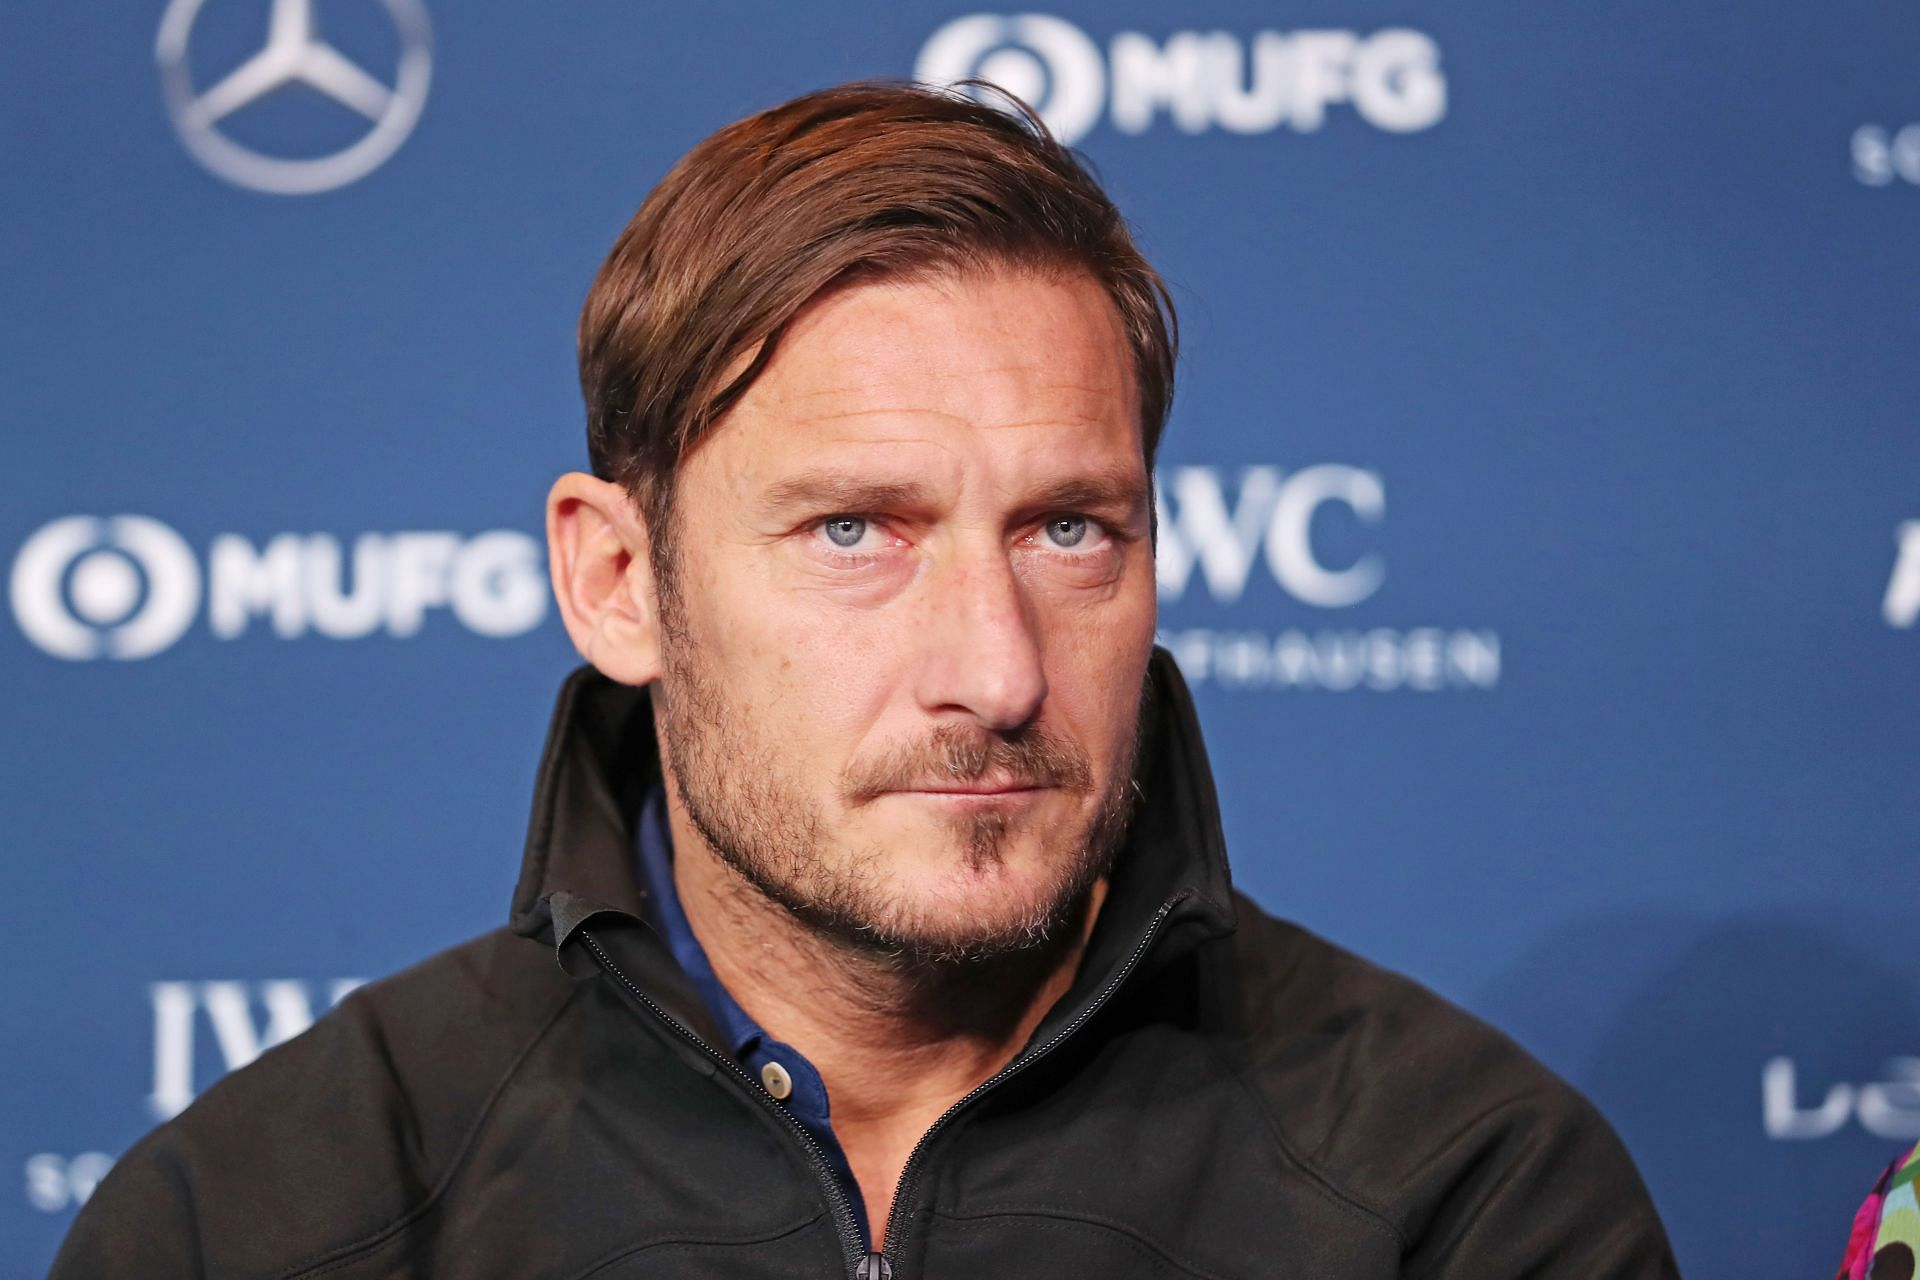 Francesco Totti has revealed that he might have left AS Roma for Real Madrid.